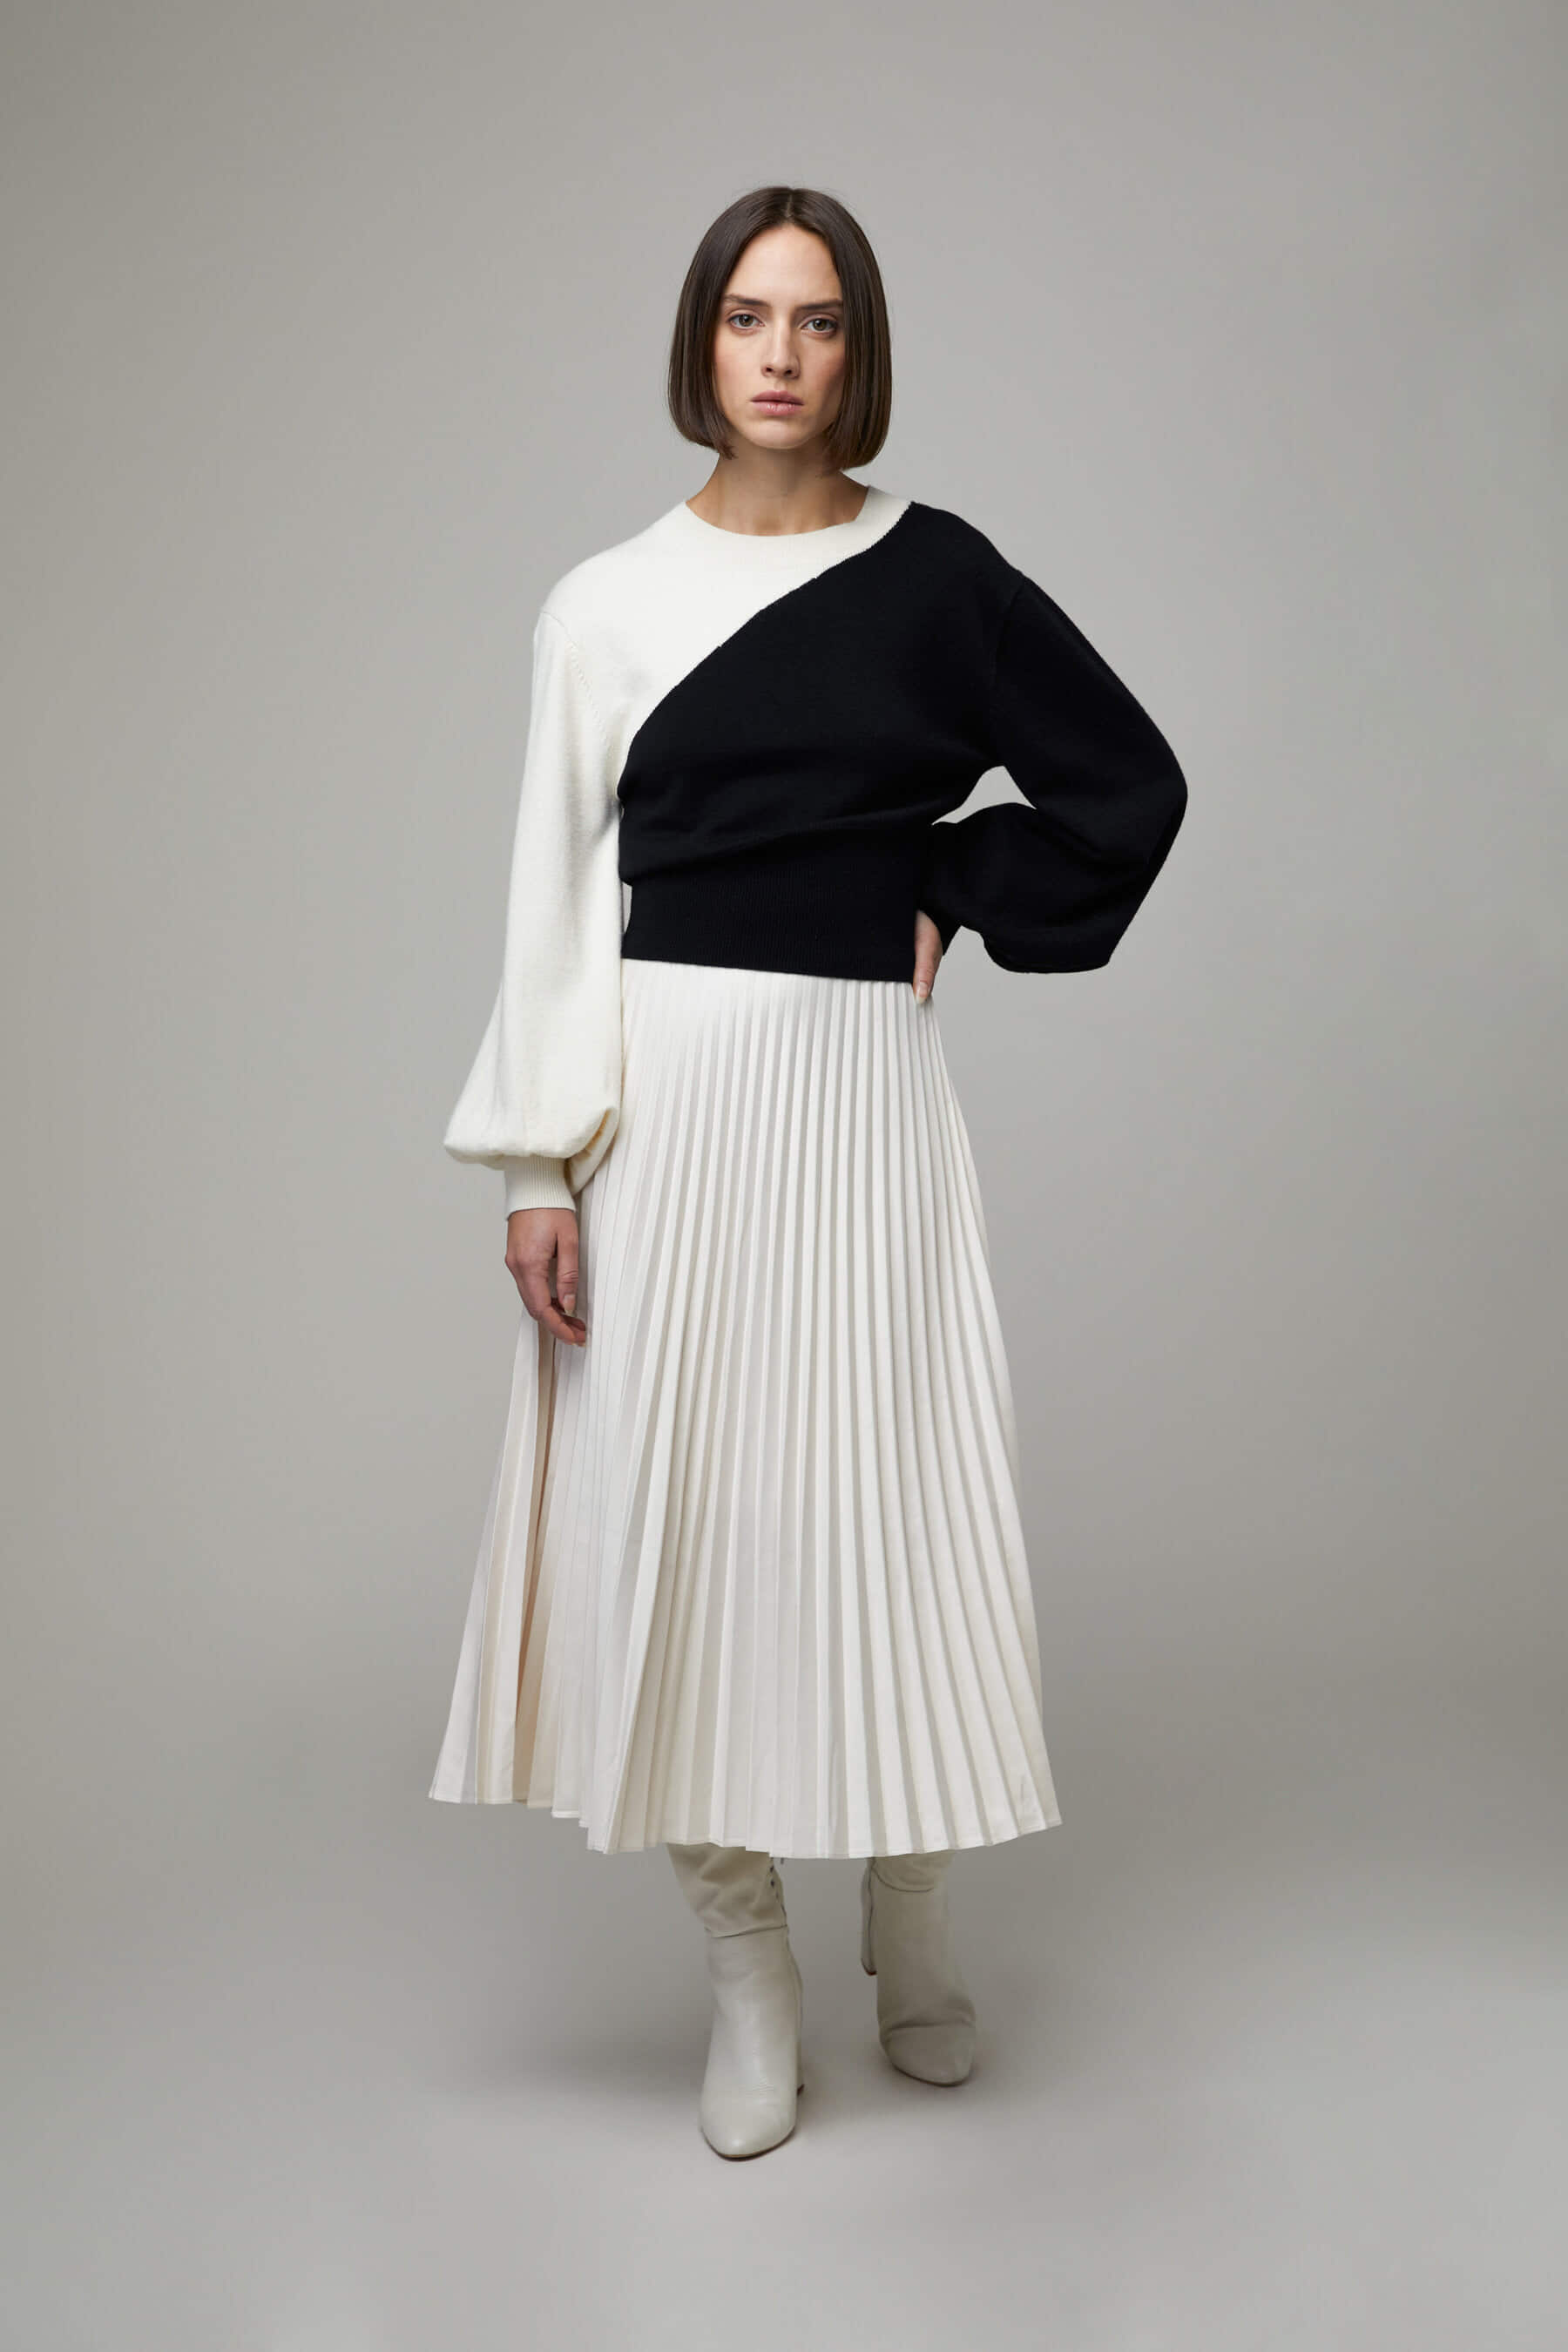 Sweater 3869 by Oak + Fort